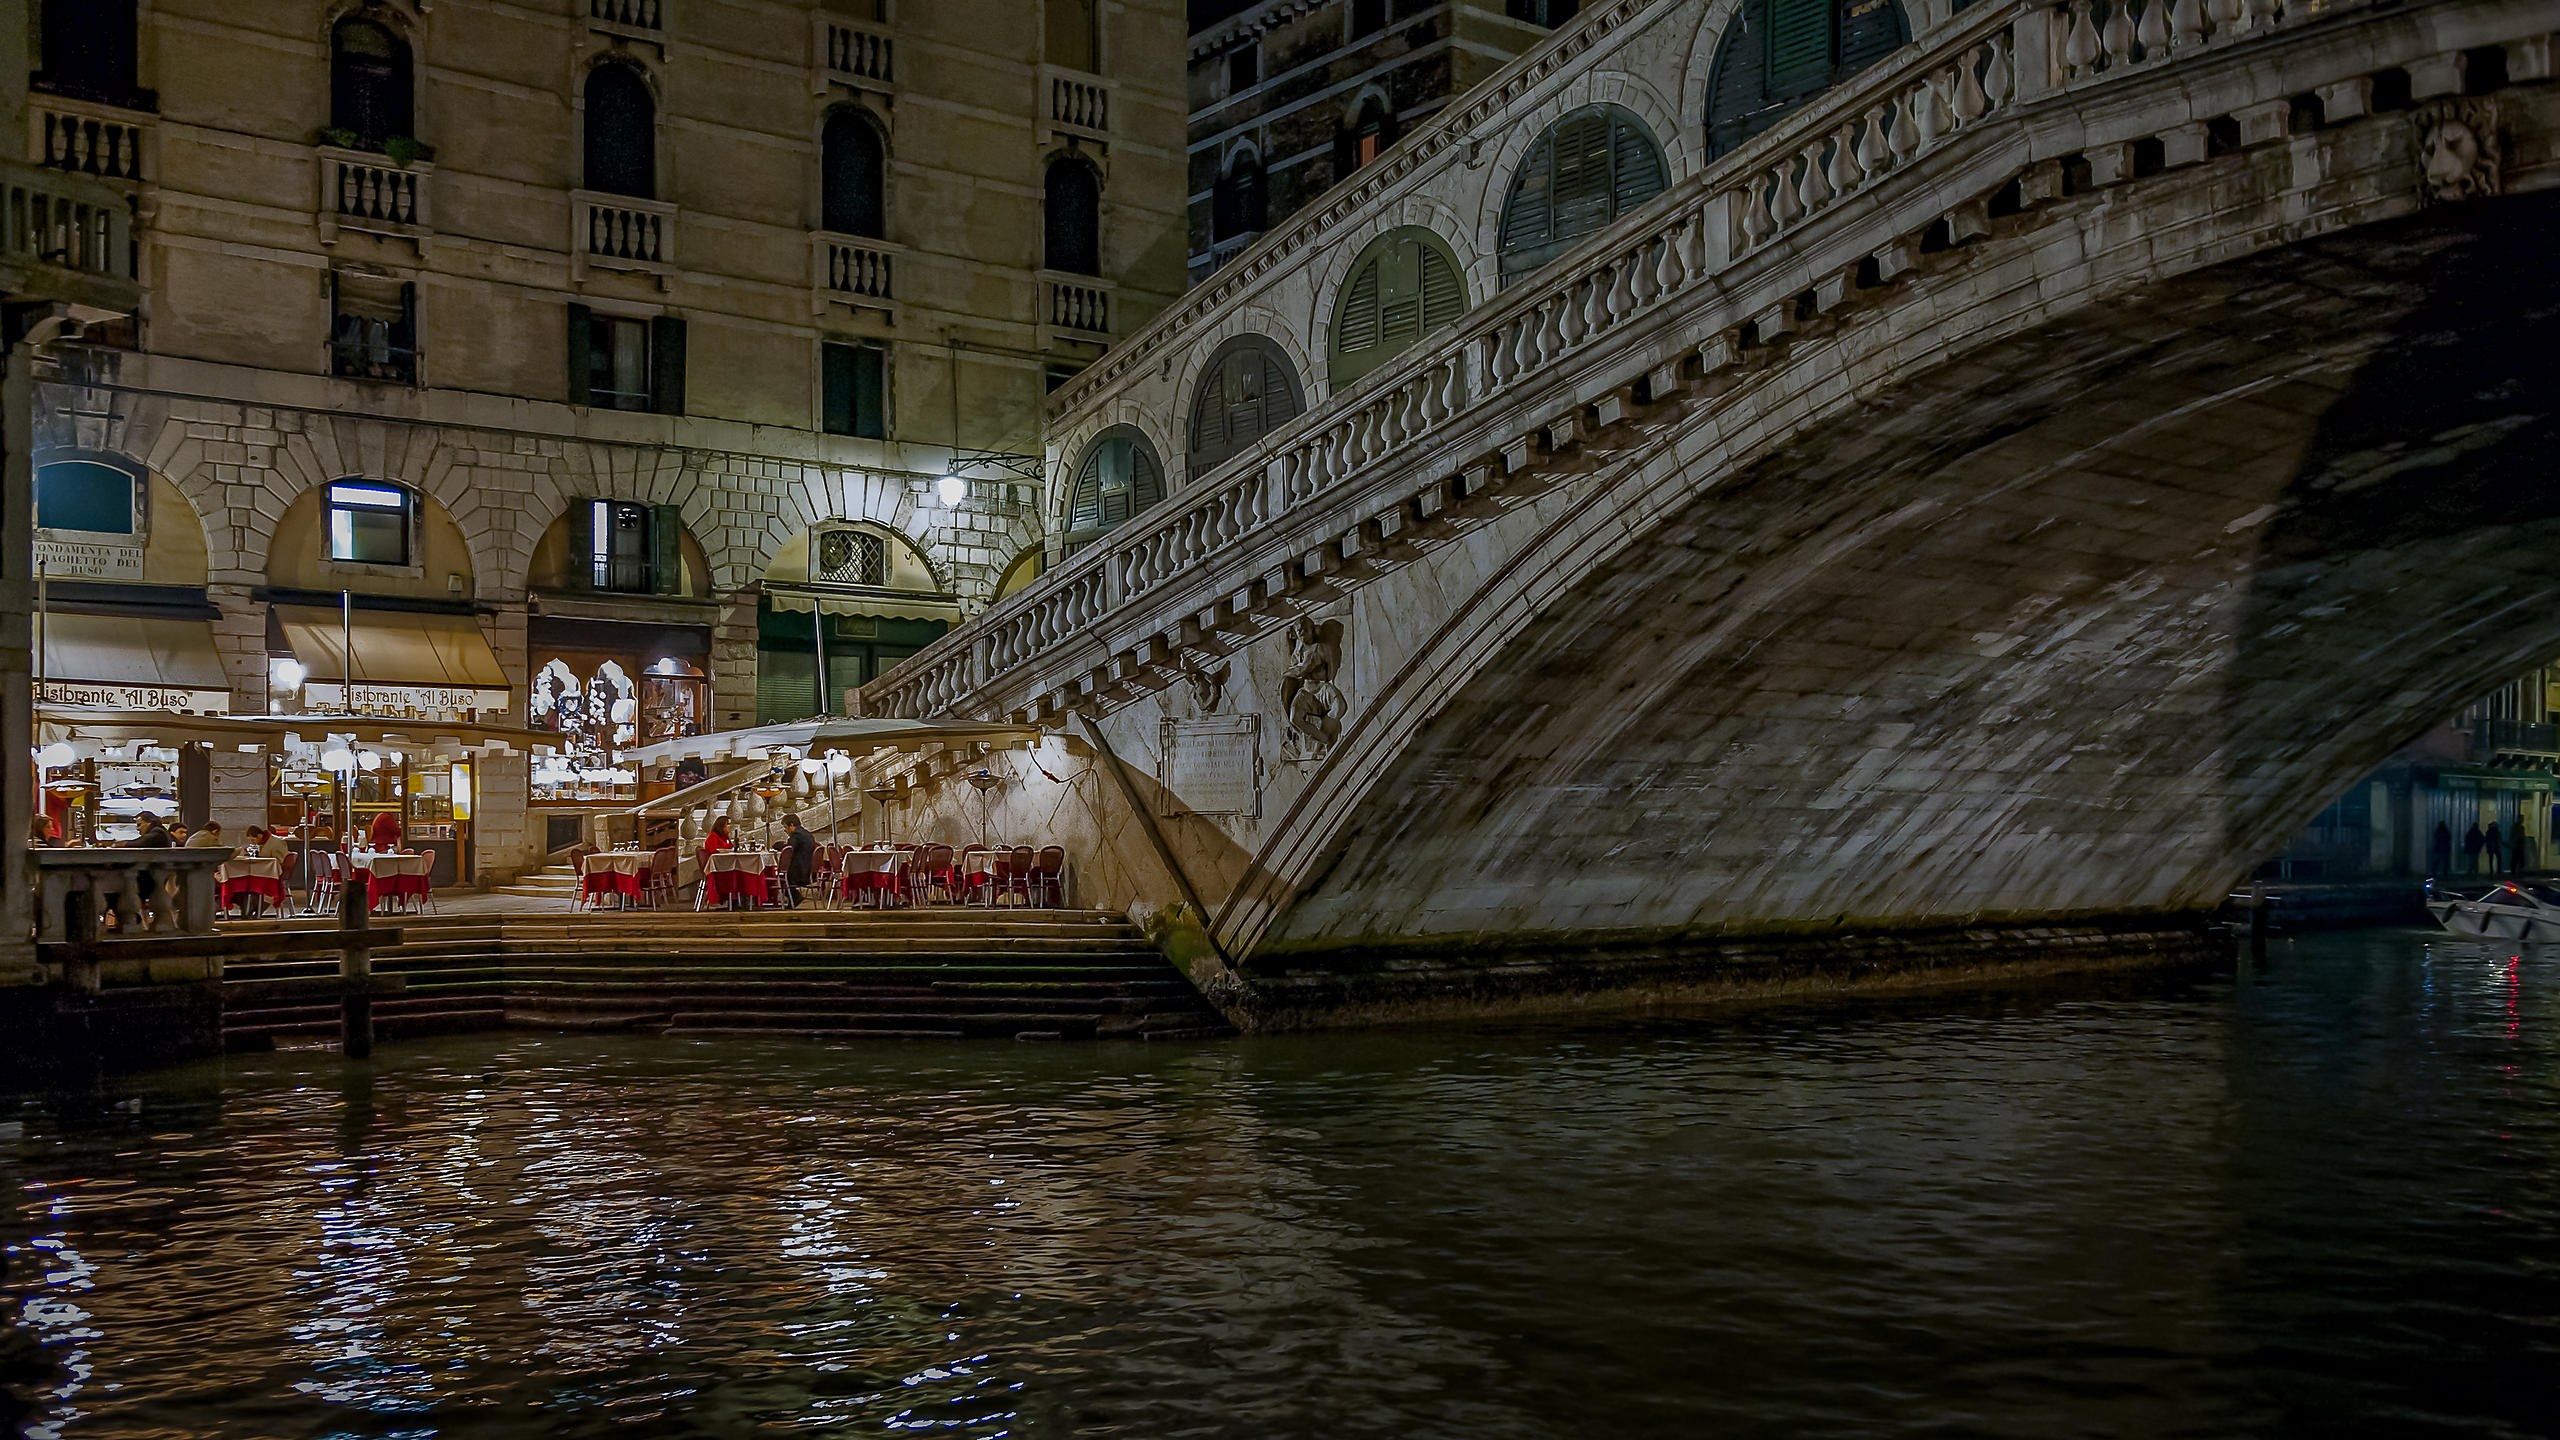 Romantic Diners at the Rialto Bridge, Venice